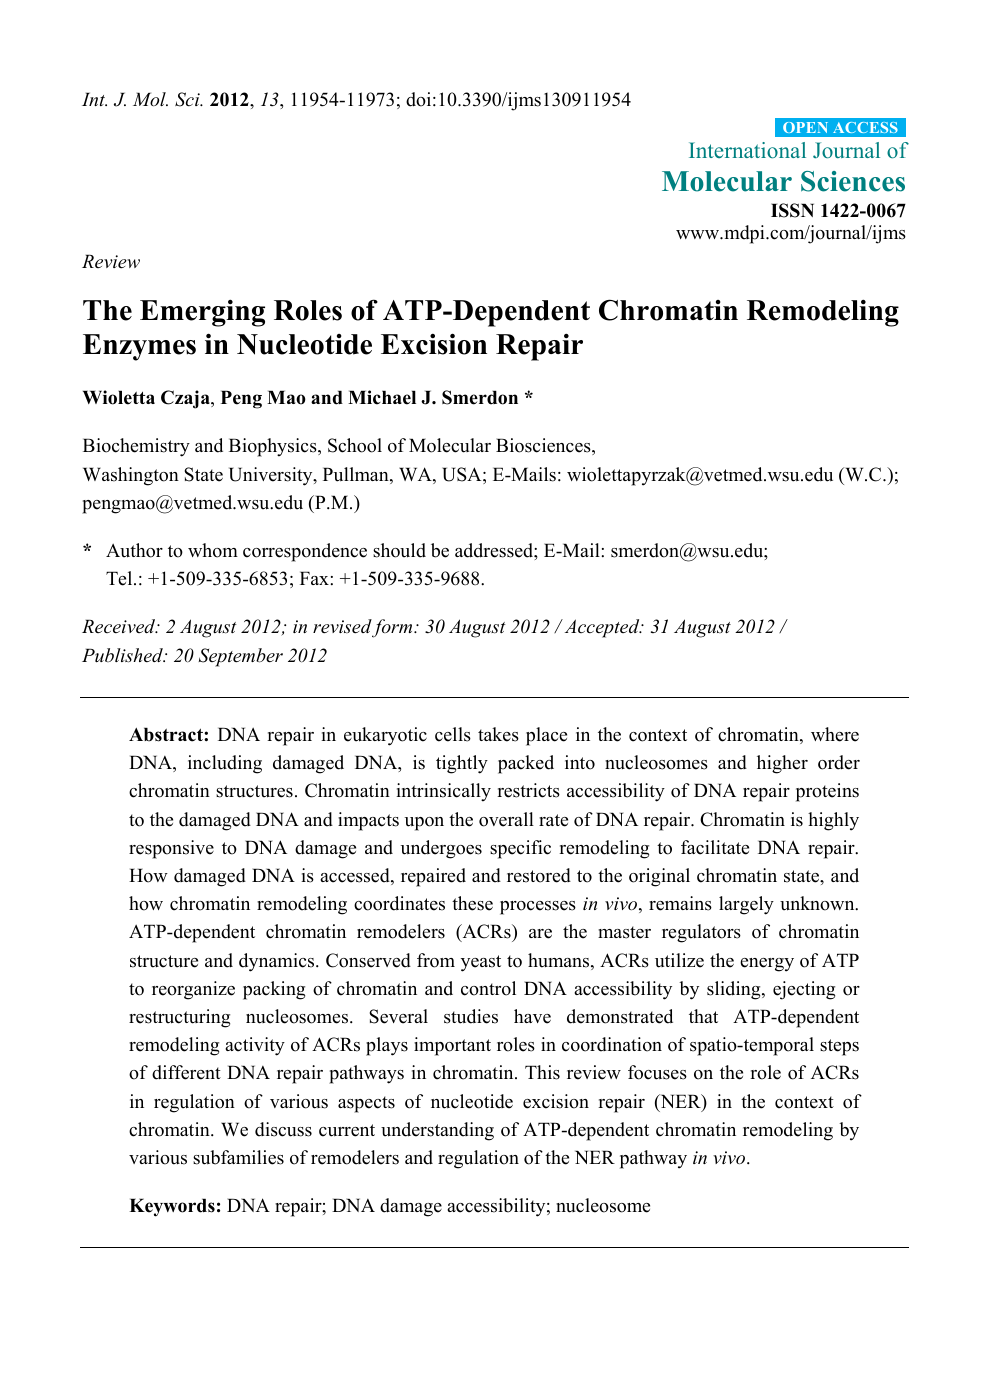 The Emerging Roles of ATP-Dependent Chromatin Remodeling